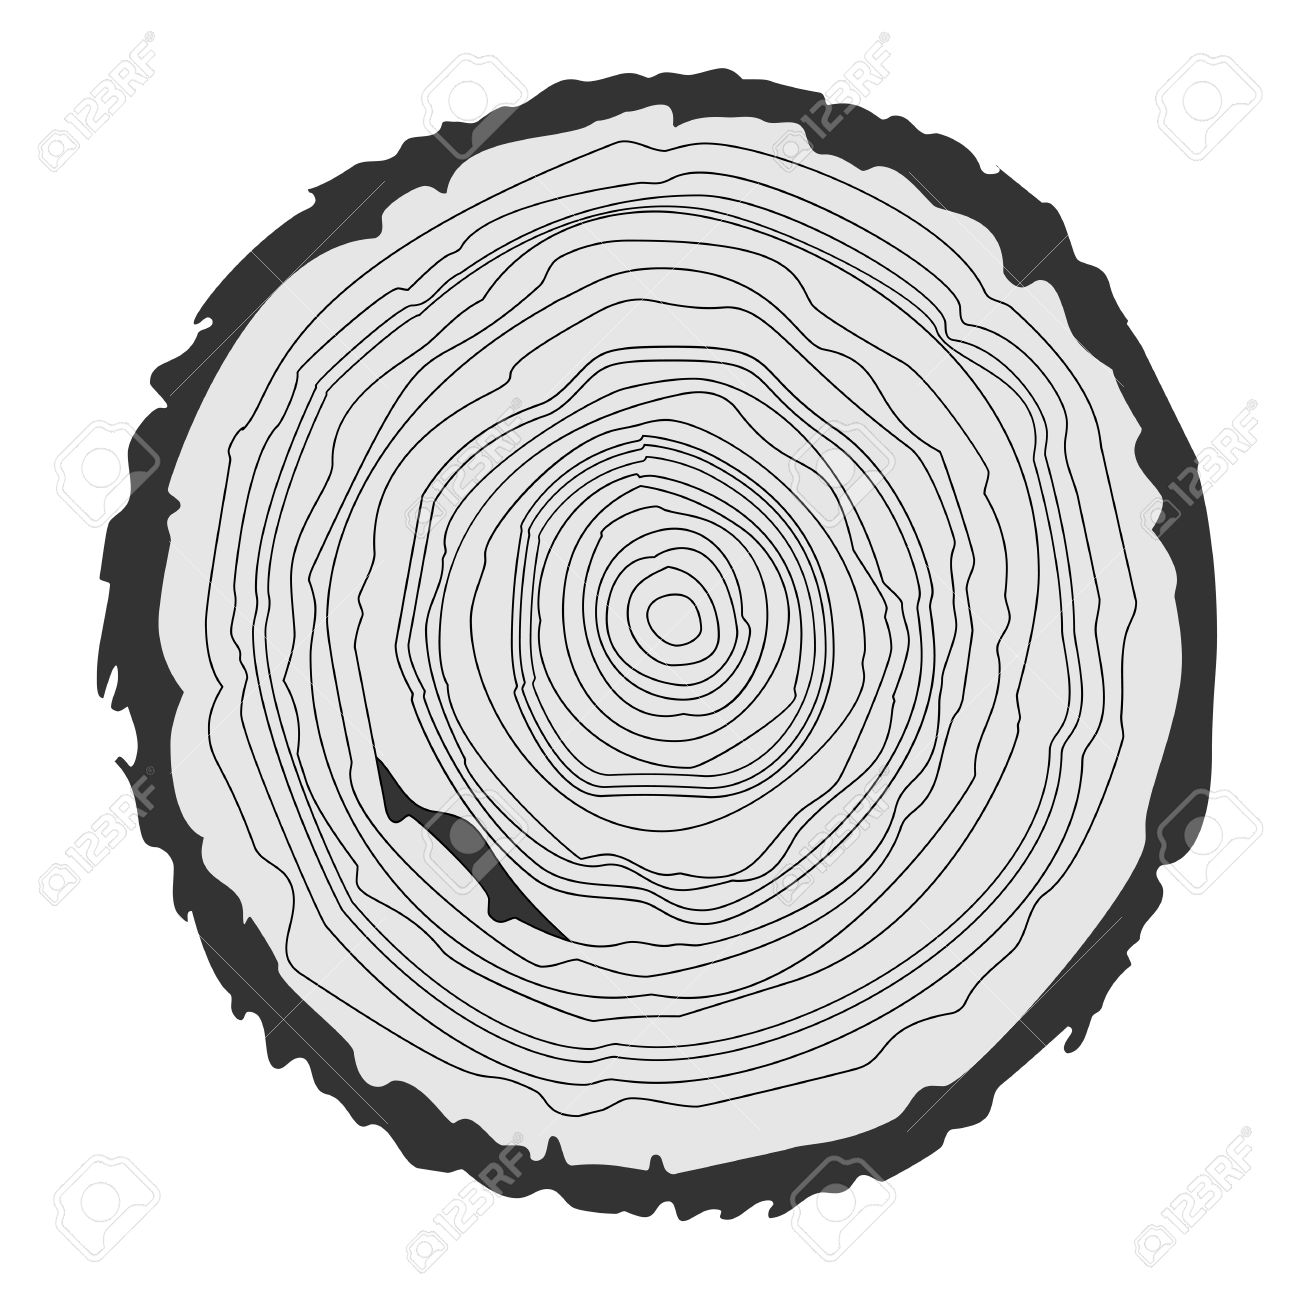 Tree Rings Images &- Stock Pictures. Royalty Free Tree Rings Photos ...